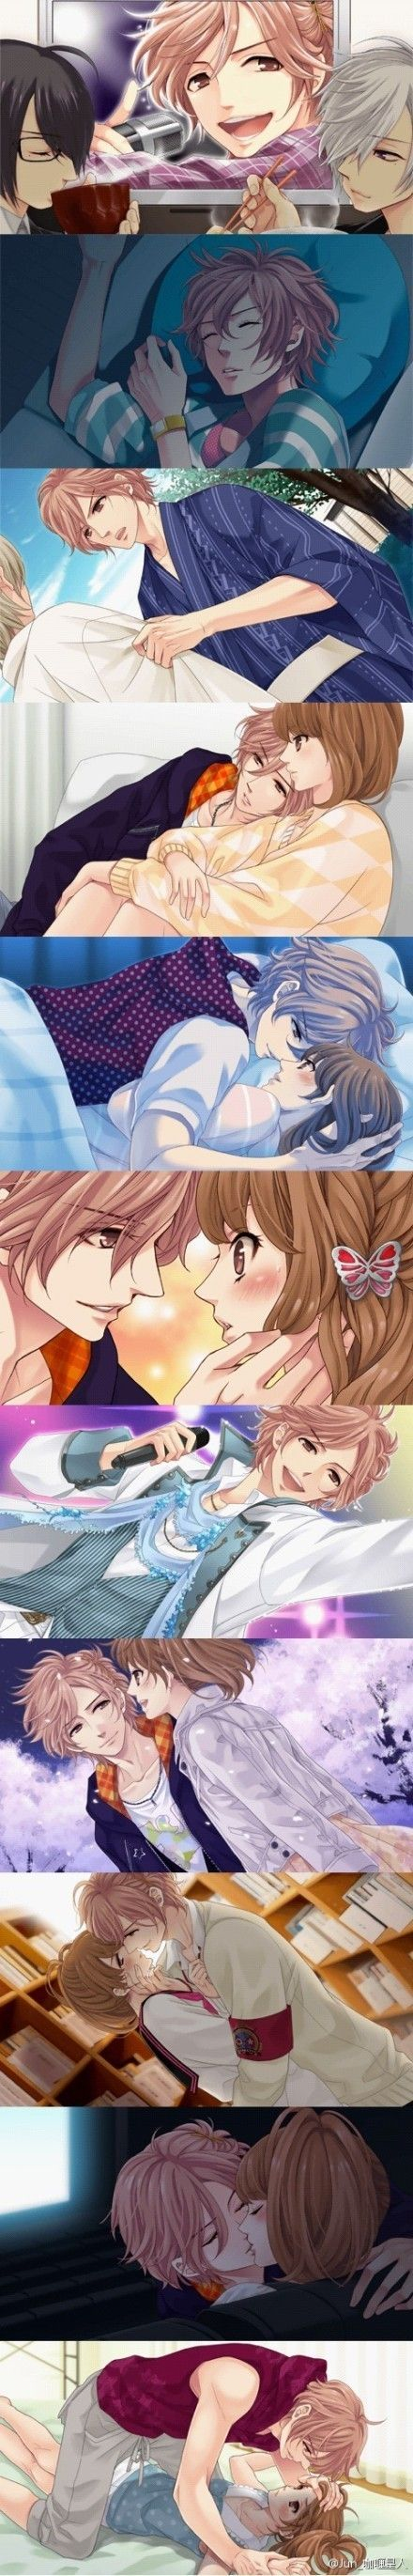 Brothers conflict: Futo and Ema